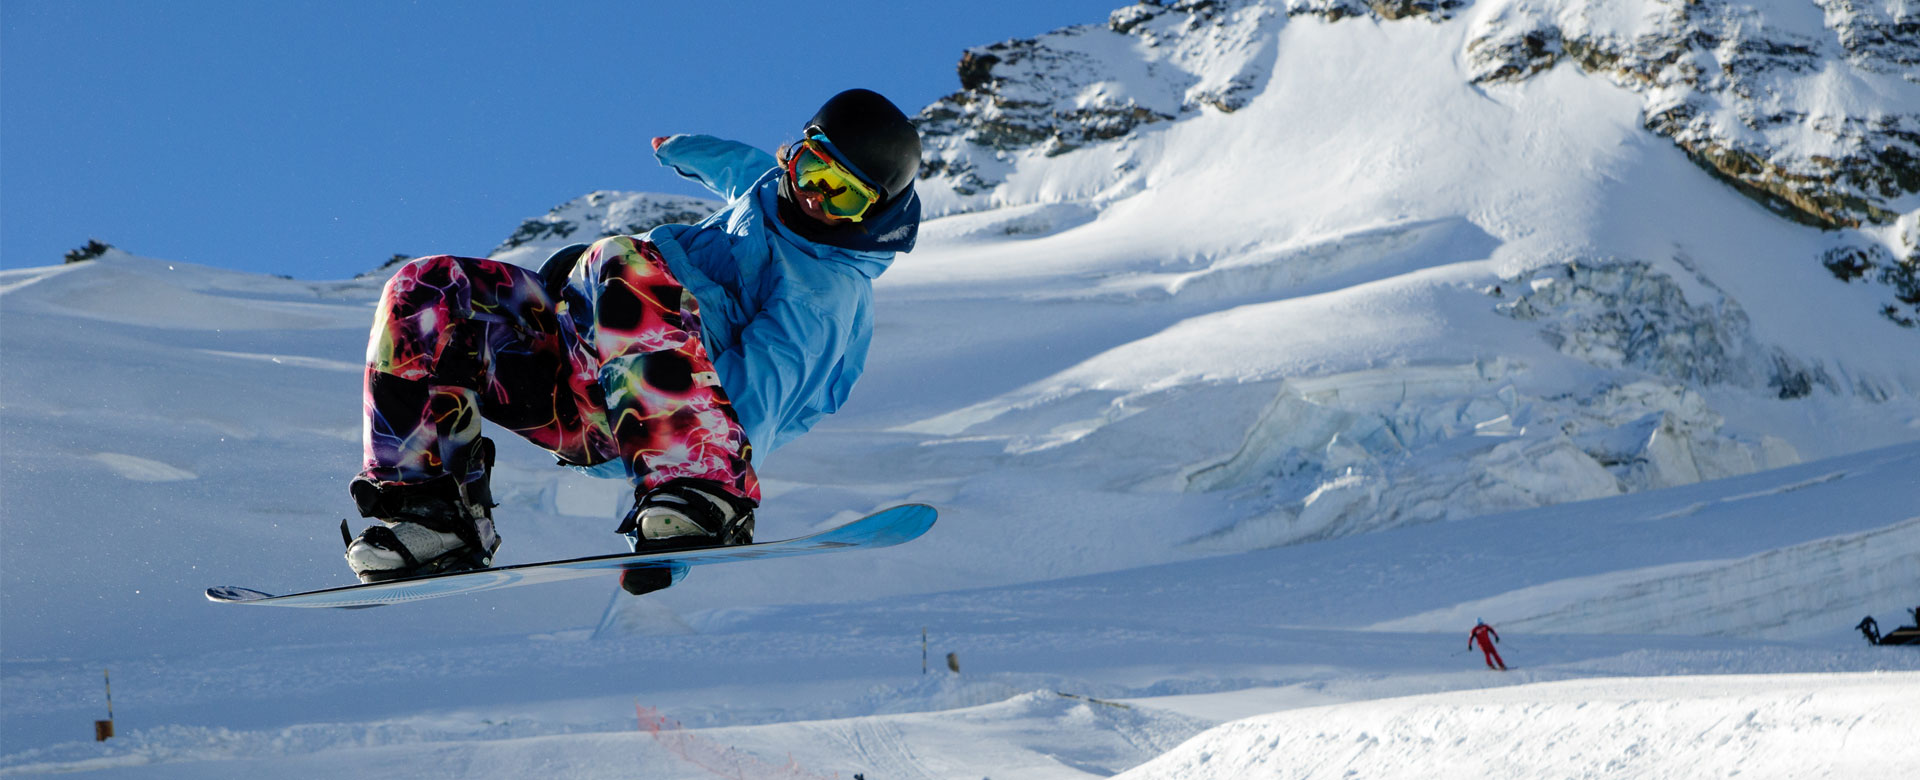 Saas Fee ski gap course and snowboard instructor training